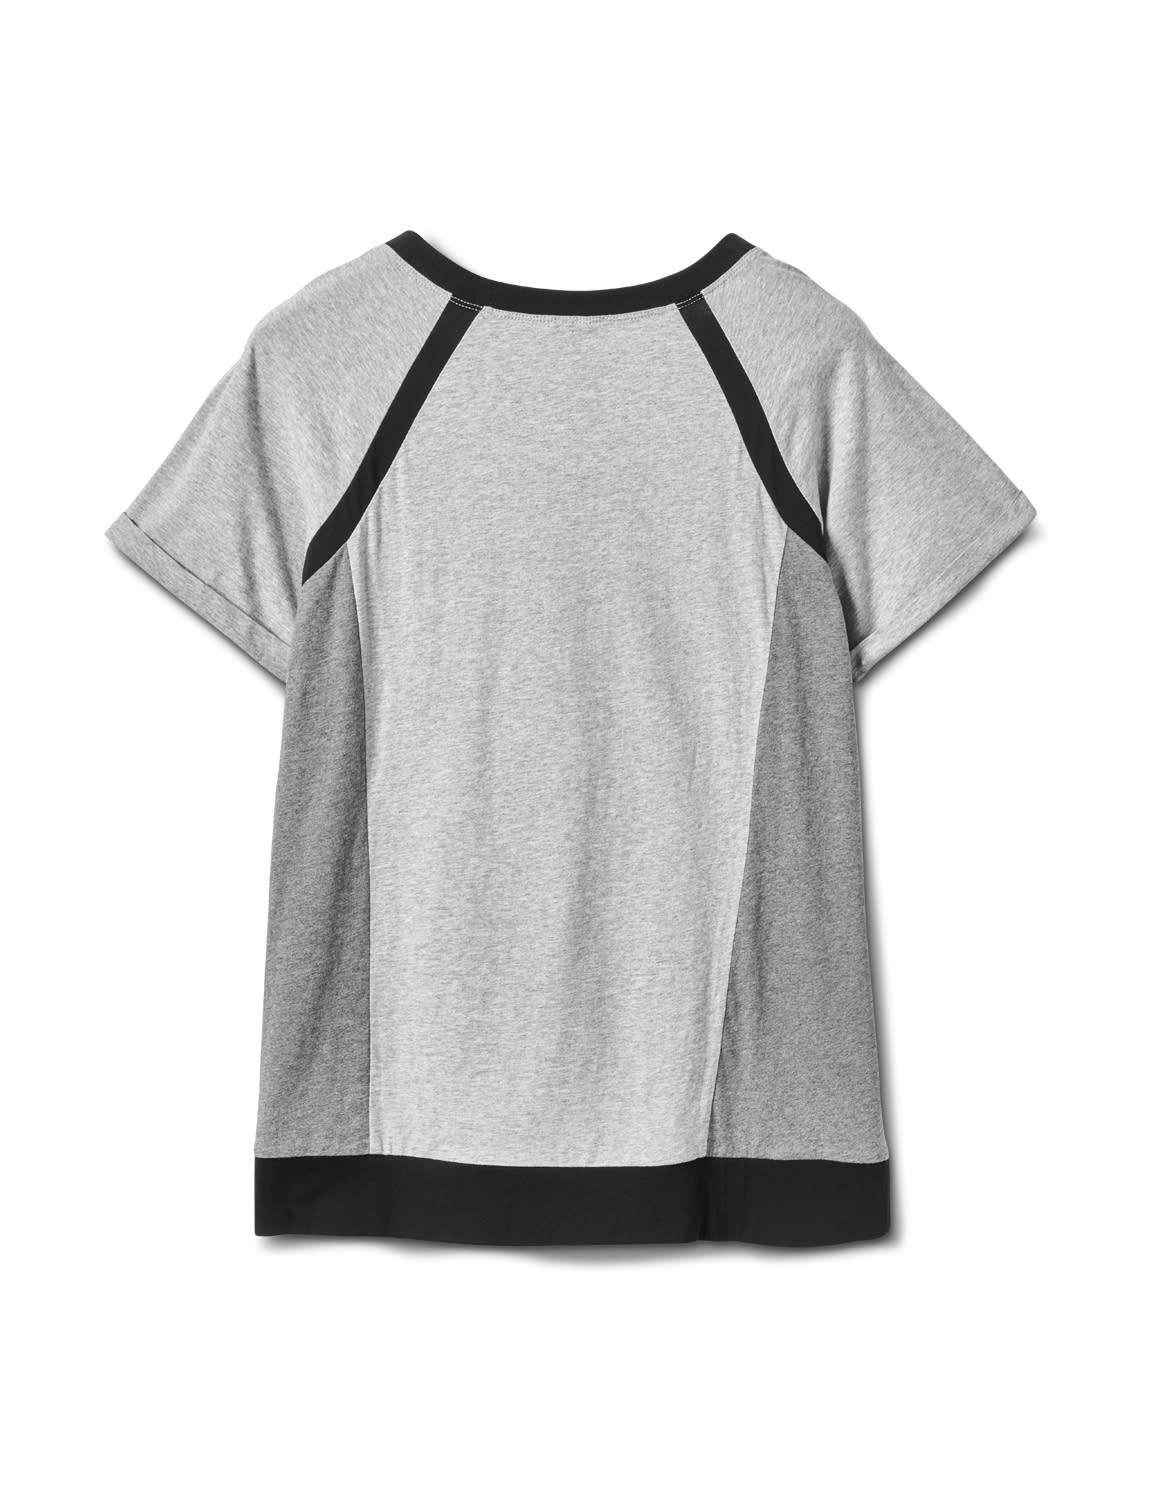 Color Block Knit Top - Plus - Grey/Black - Back